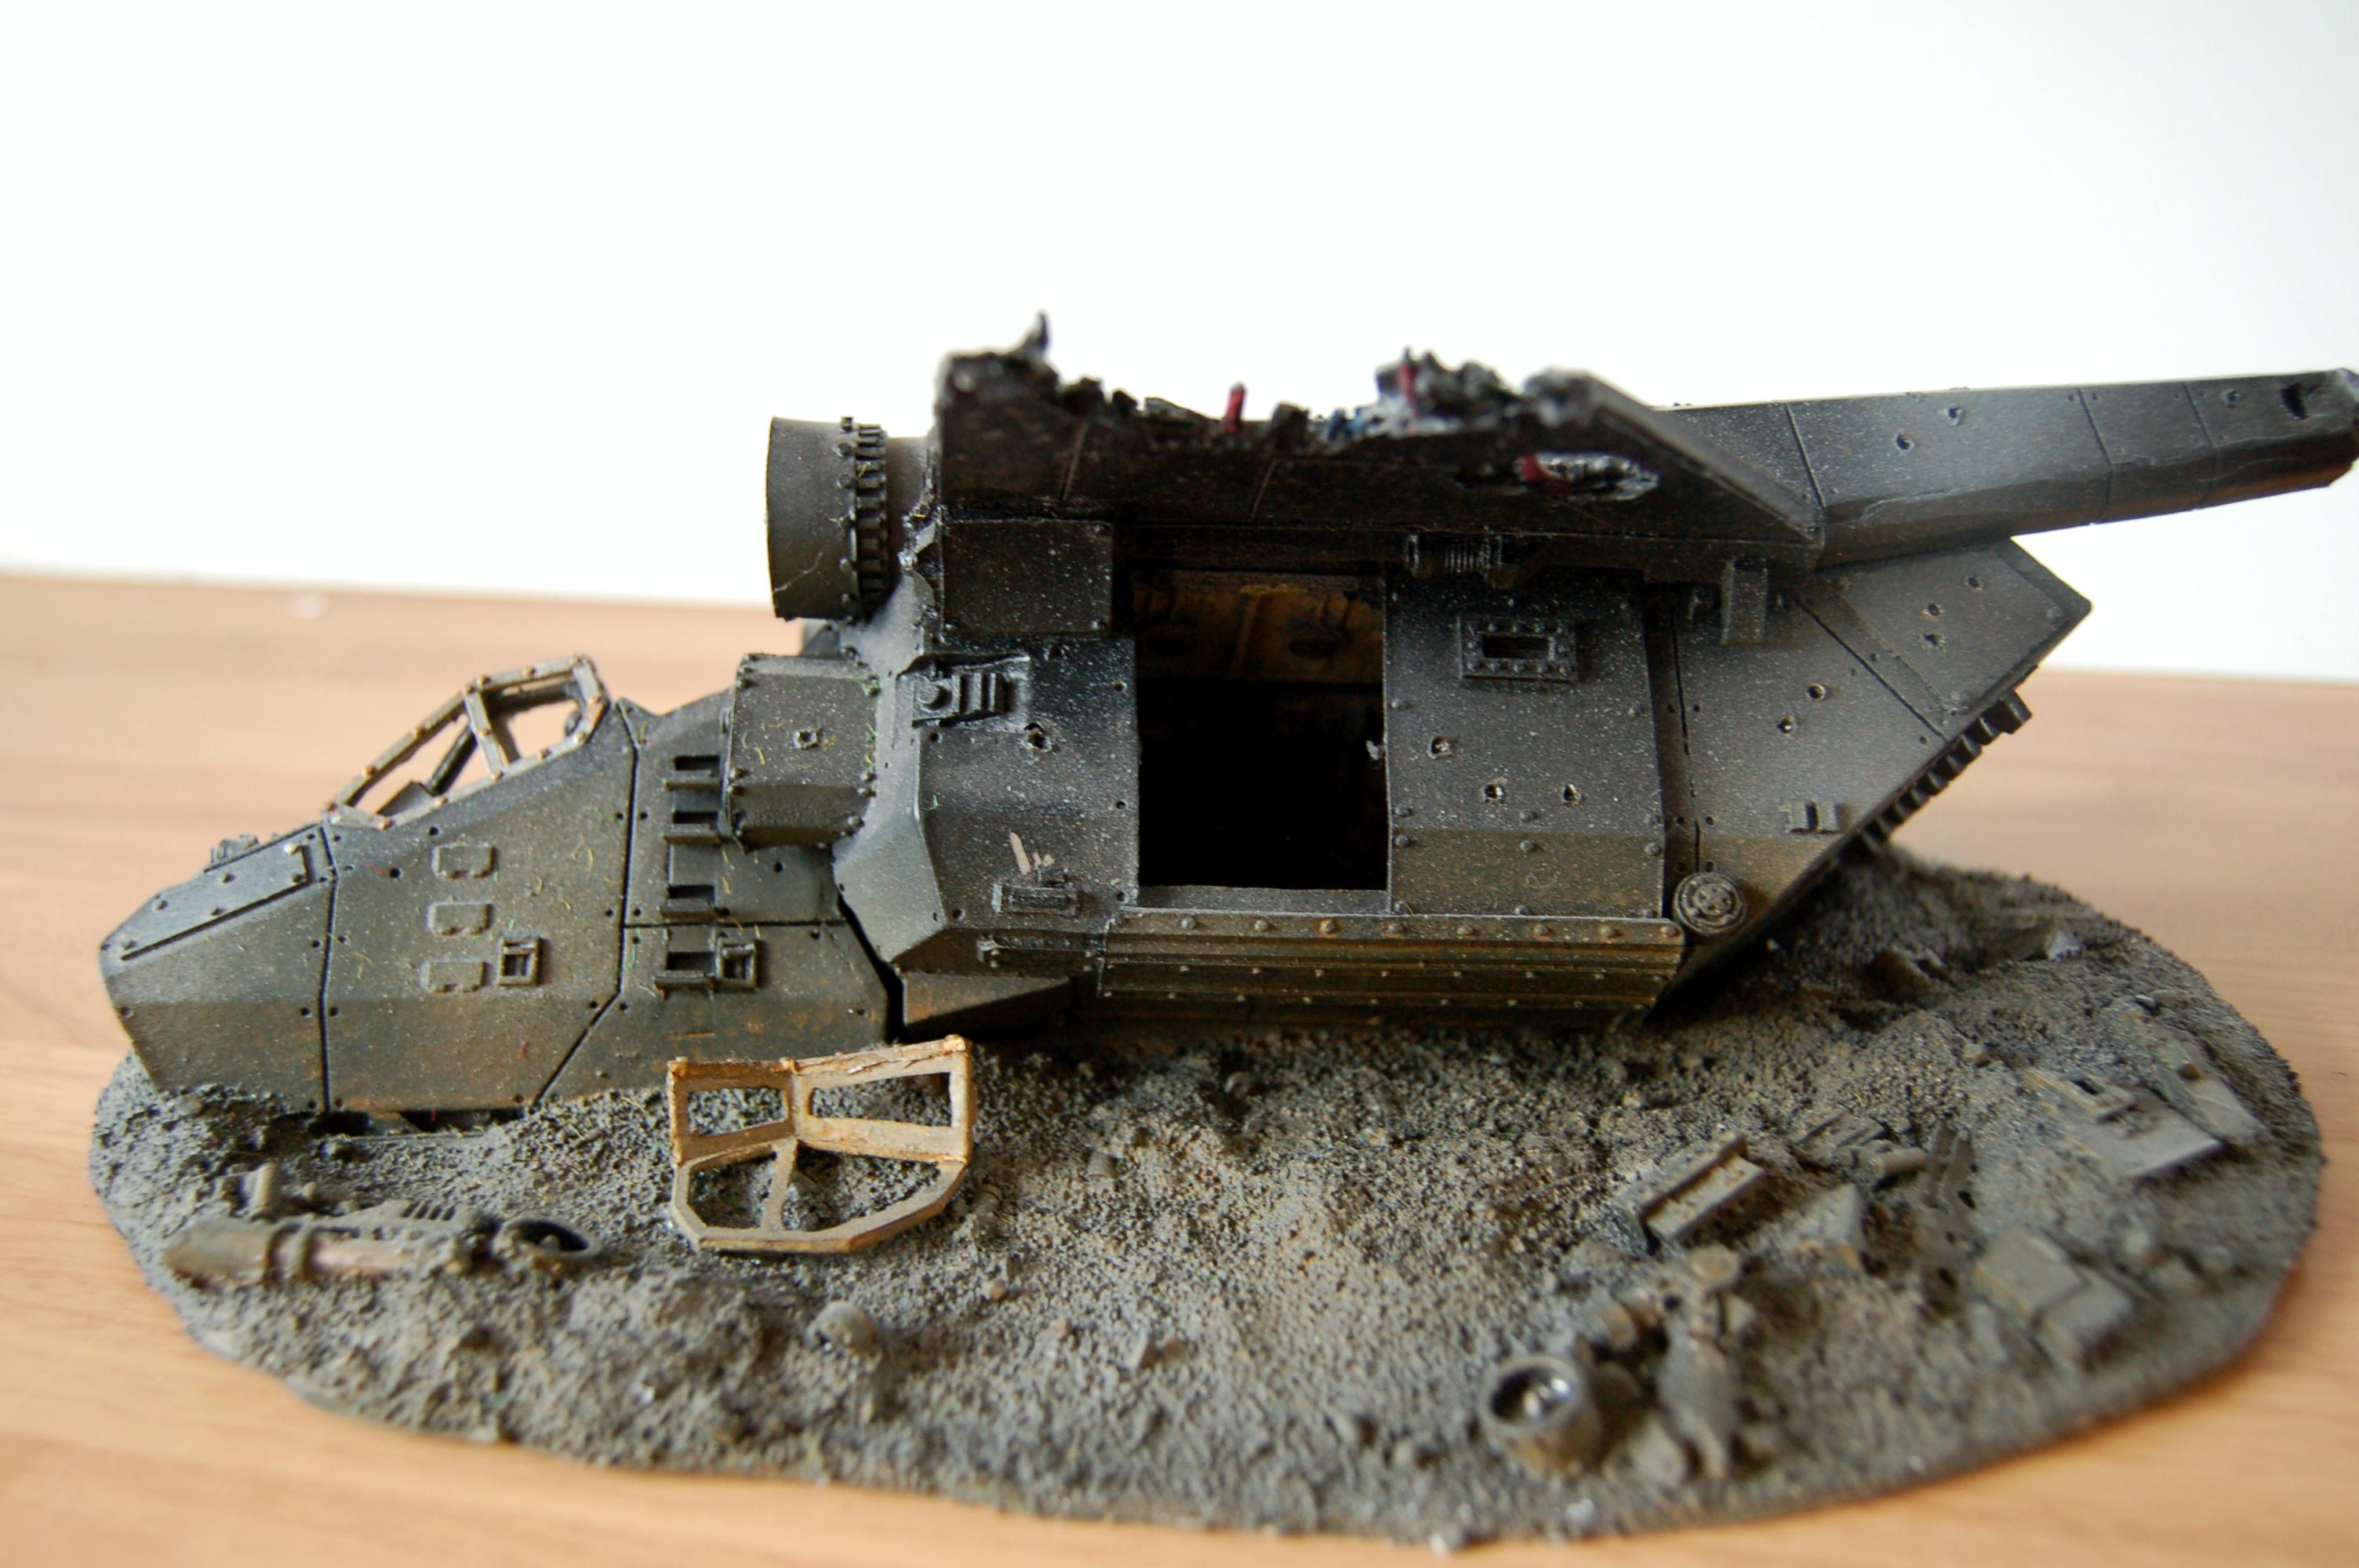 Astra Militum, Crashed, Imperial Guard, Objective Marker, Terrain, Valkyrie, Warhammer 40,000, Warhammer Fantasy